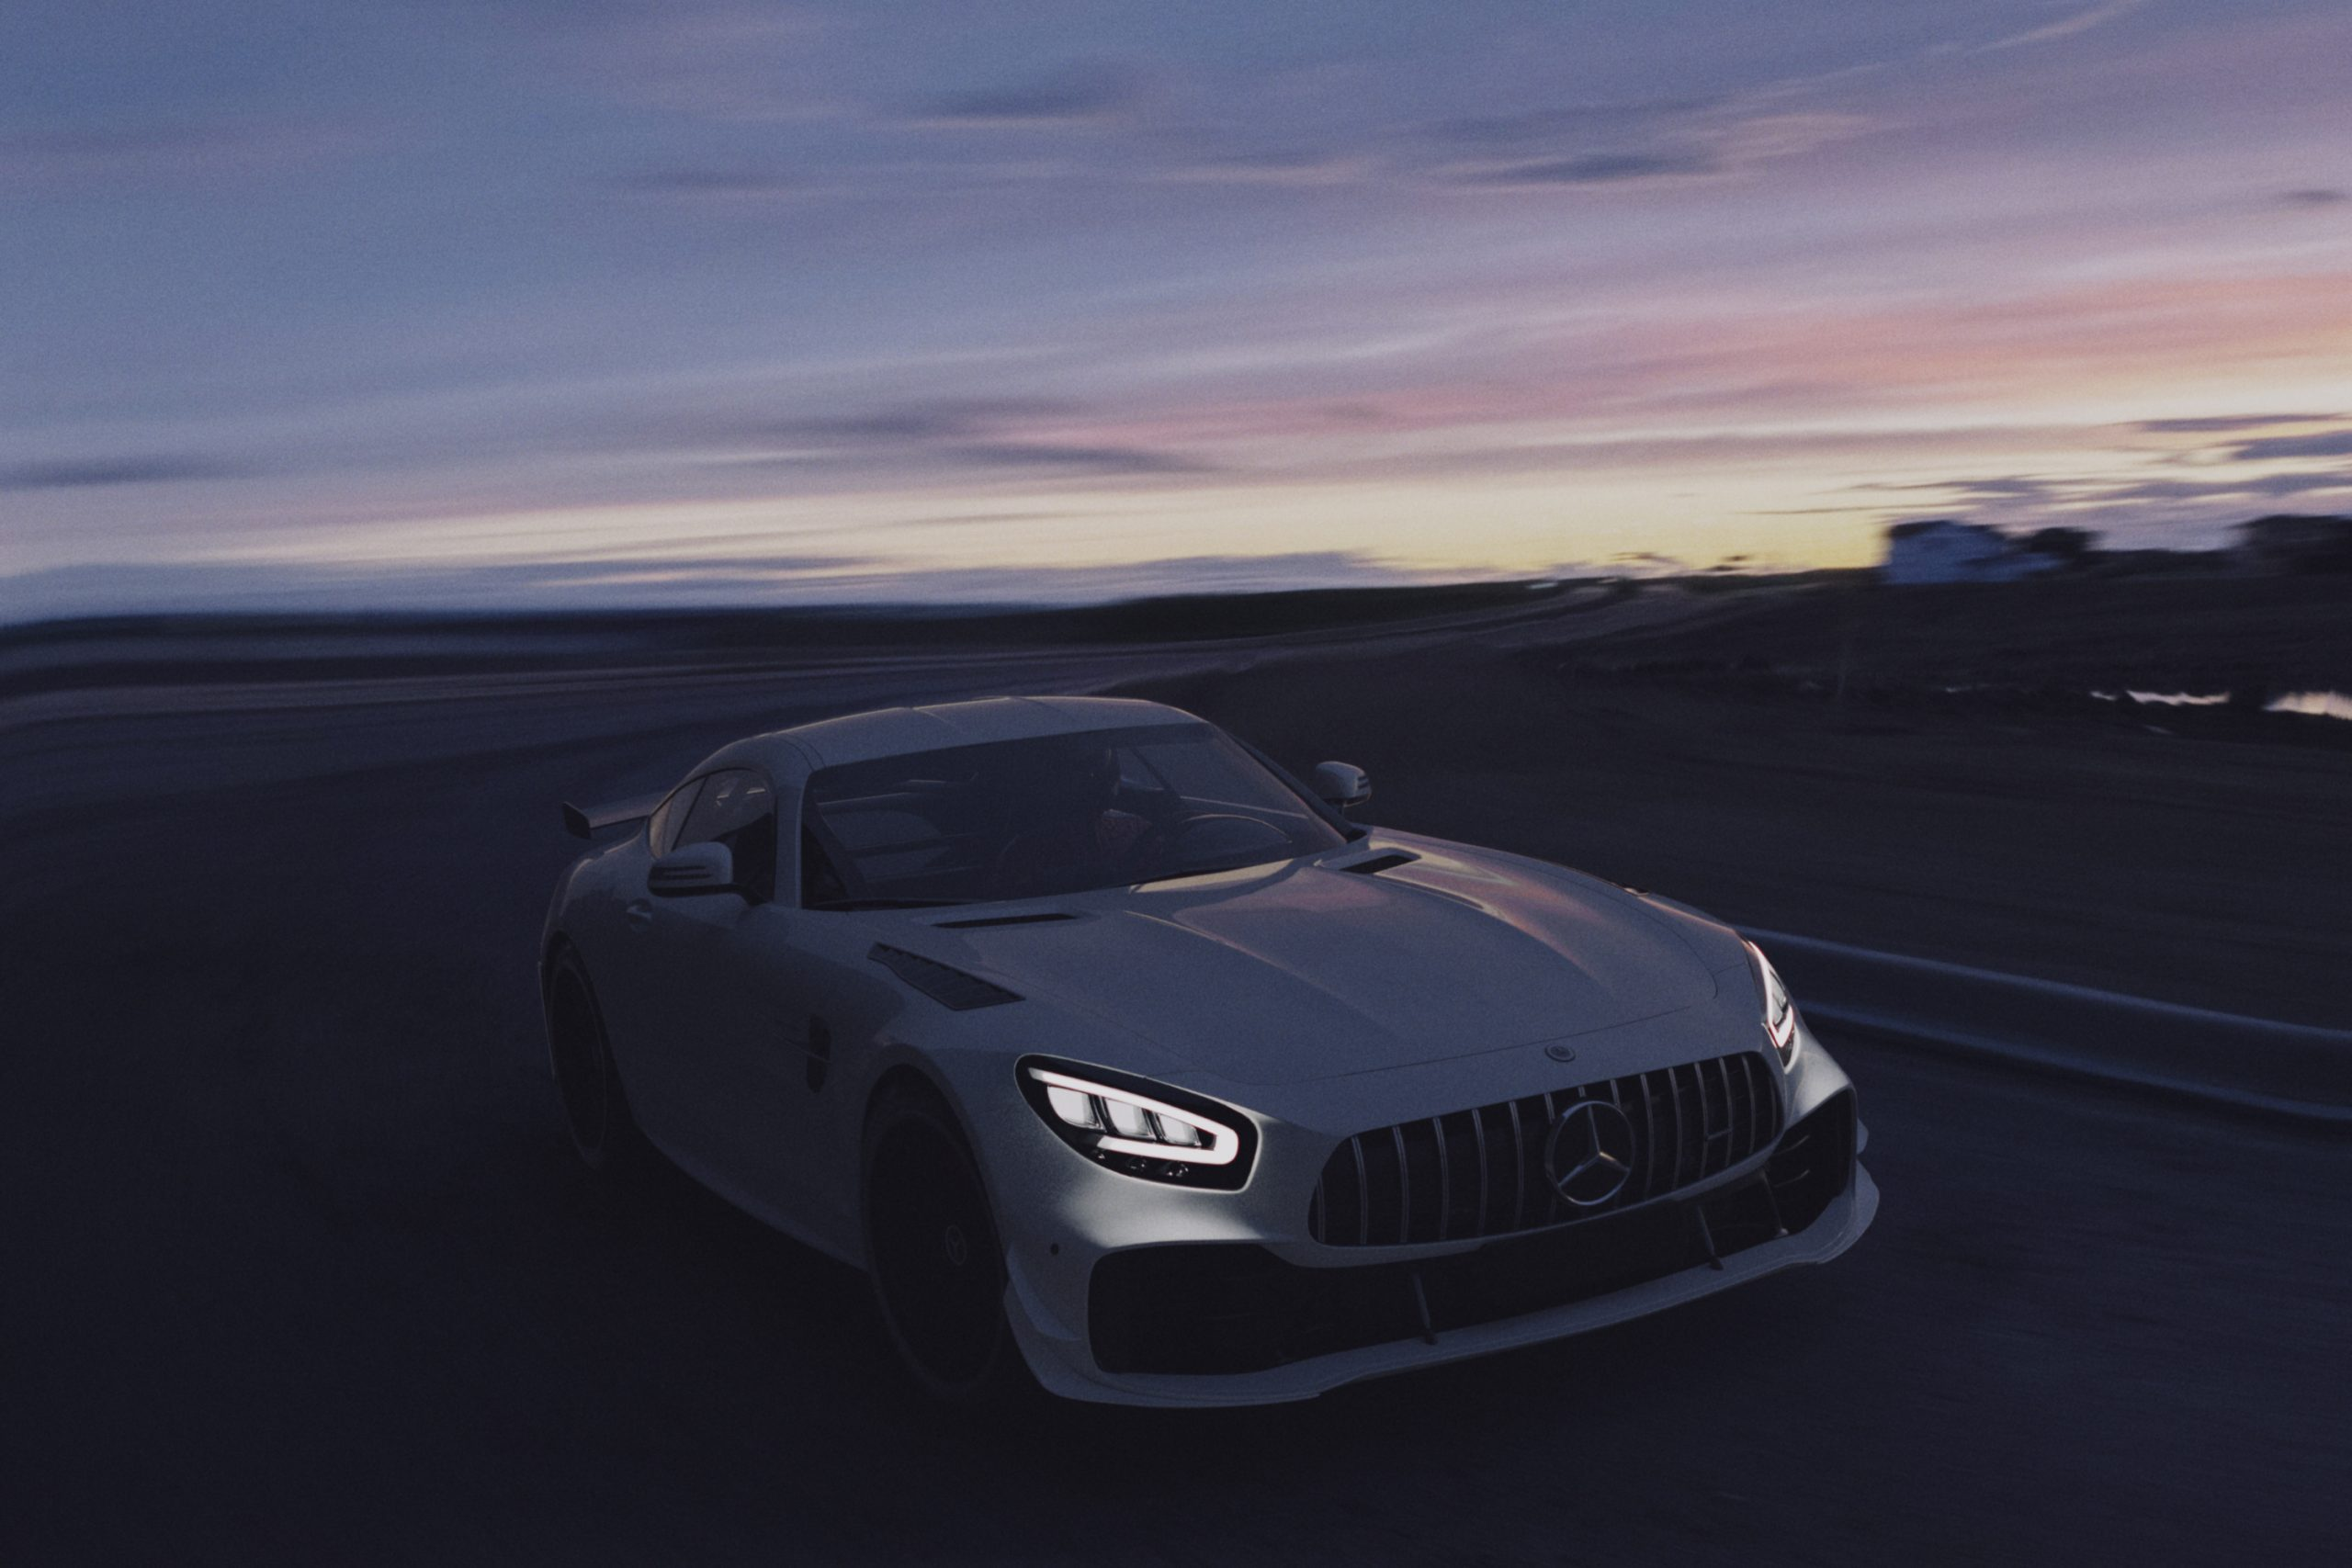 BLMRS_AMG_GT_009_GRADED